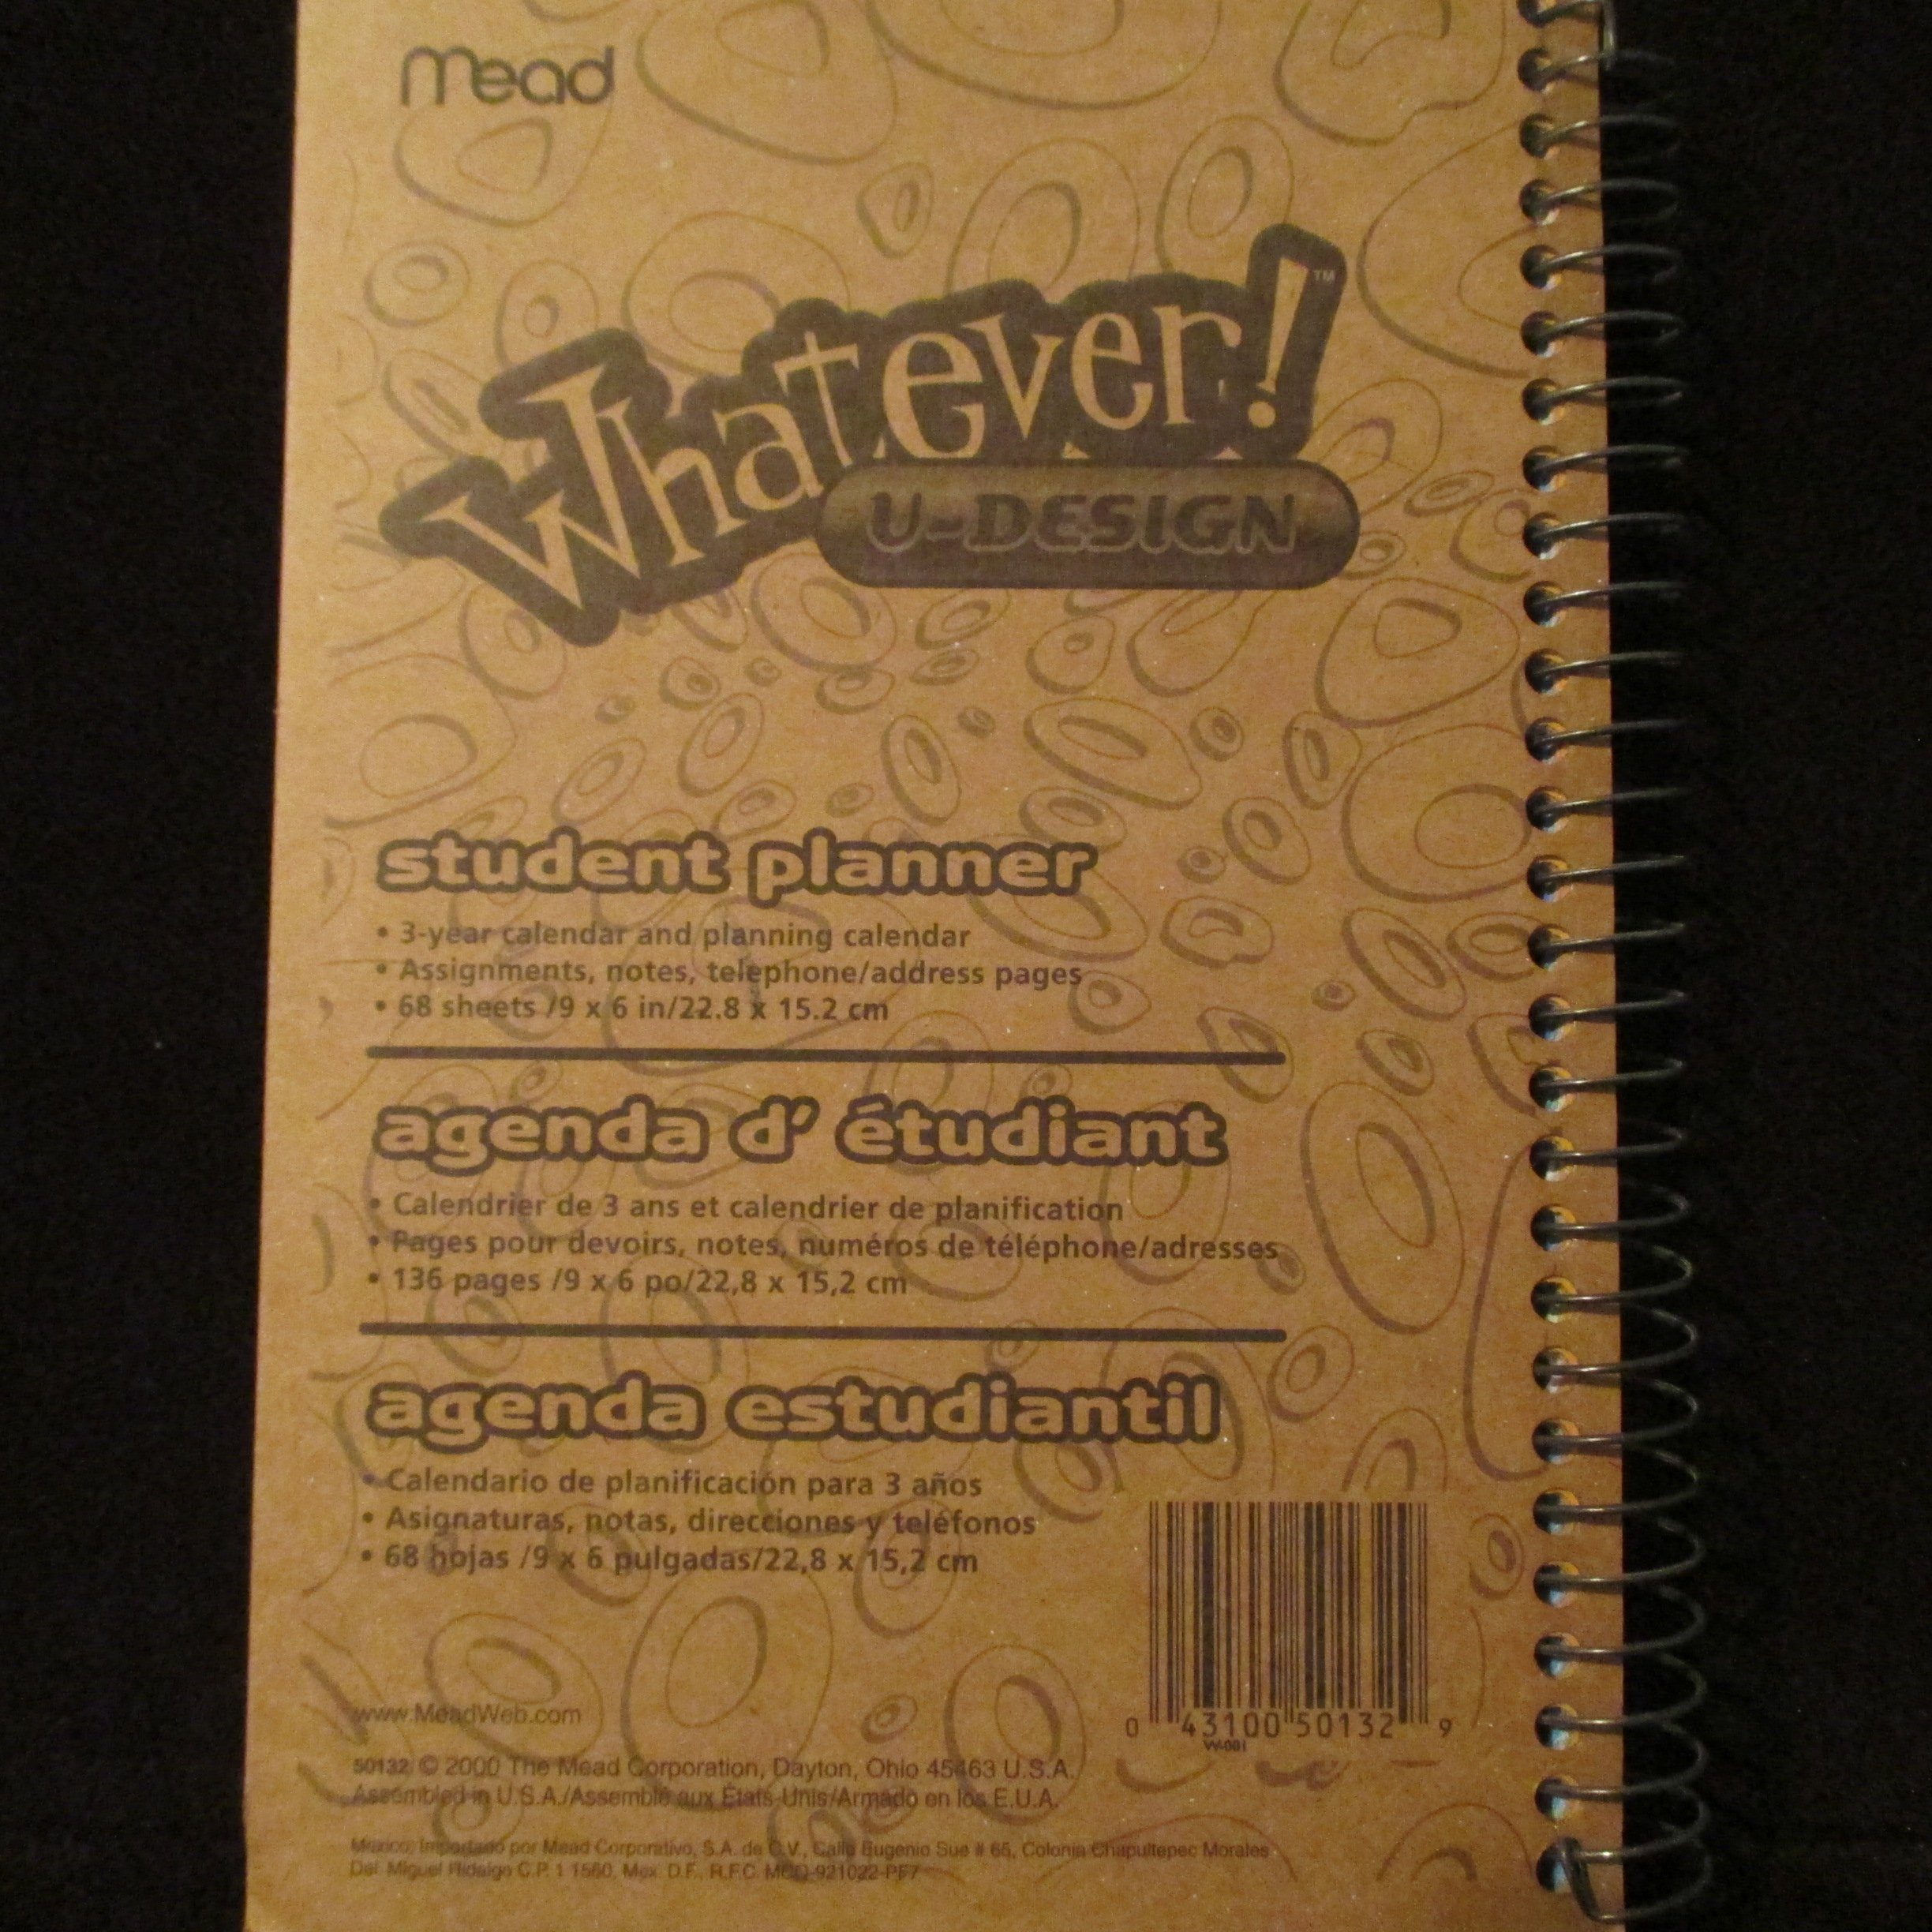 Mead Design Your Own! Student Planner: Mead: 0043100501329 ...